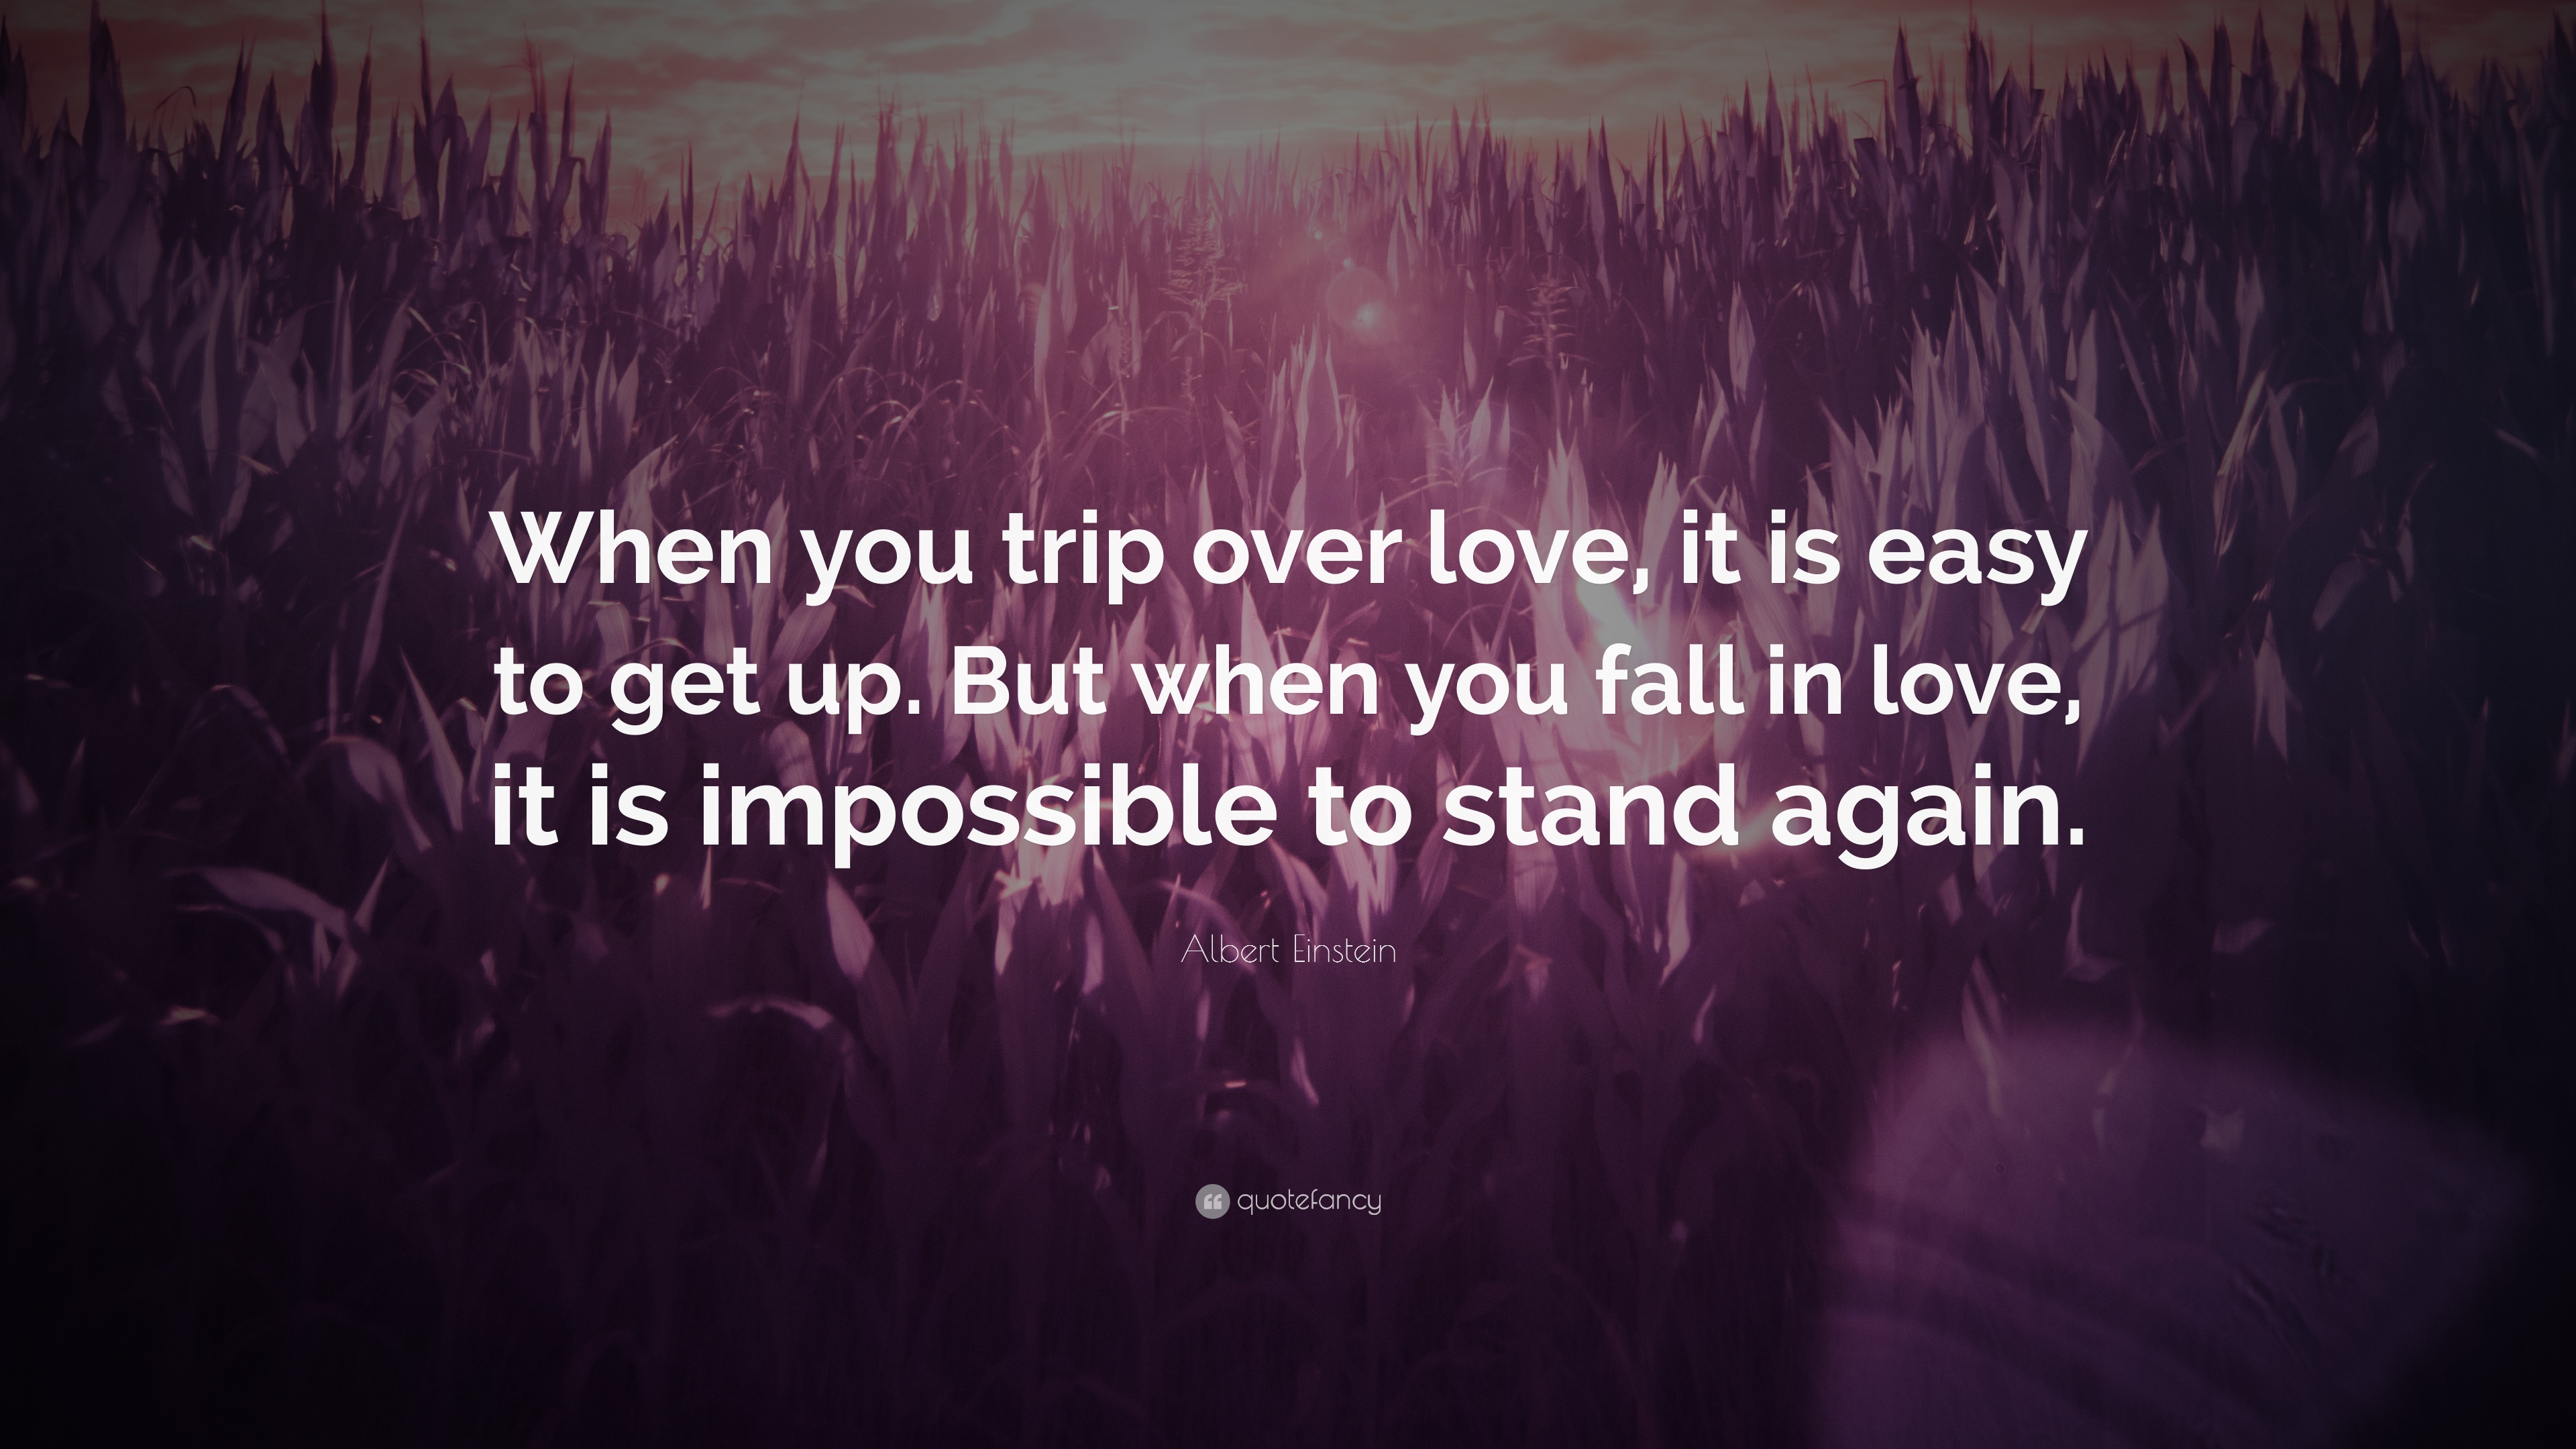 In Love Quotes Beauteous Love Quotes 26 Wallpapers  Quotefancy